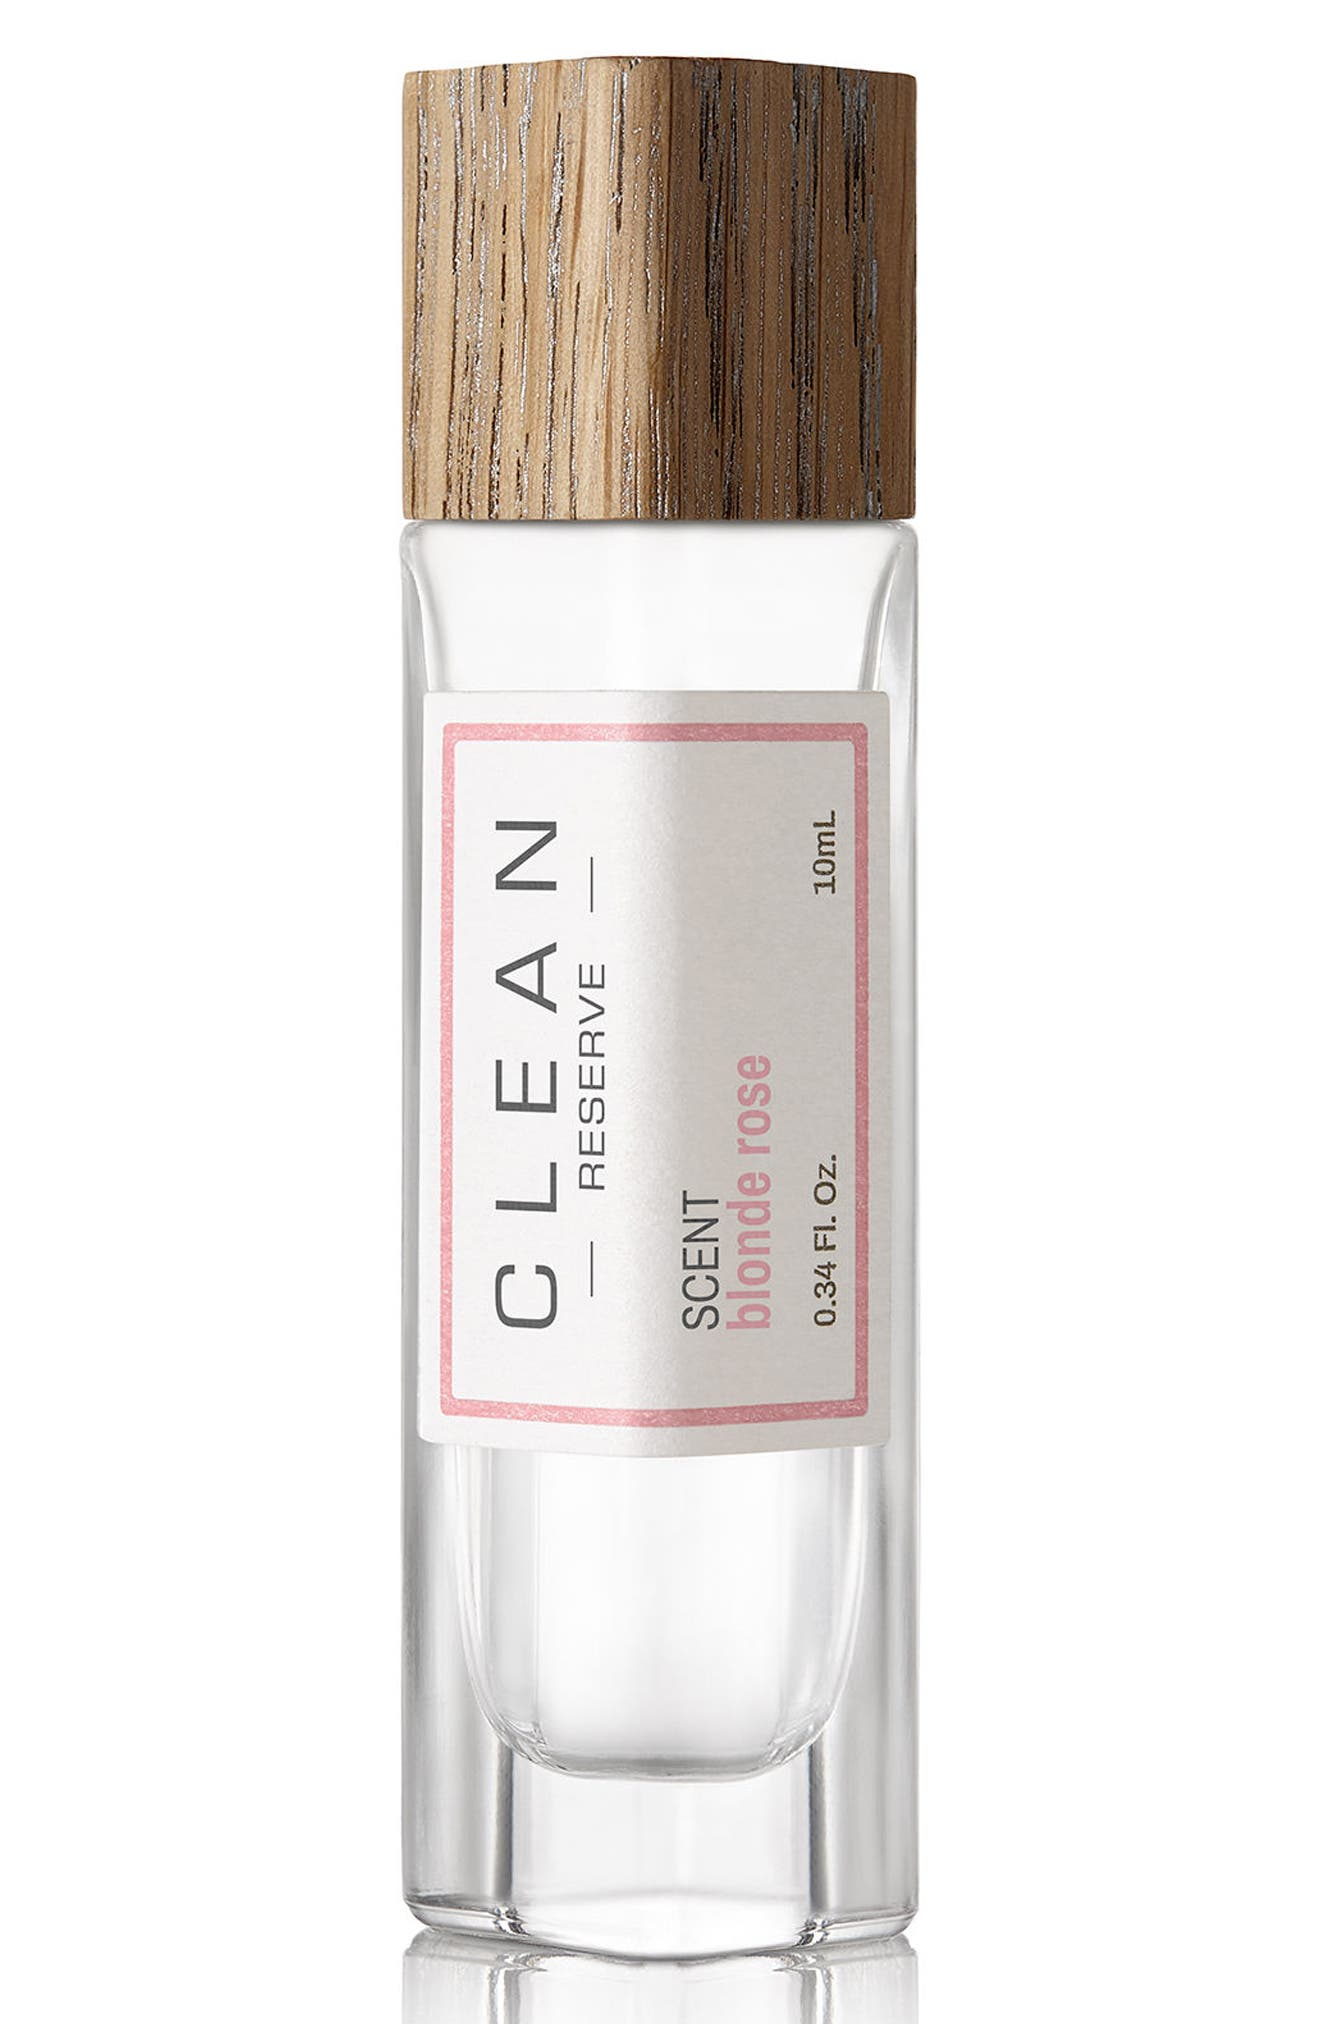 Main Image - Clean Reserve Blonde Rose Pen Spray